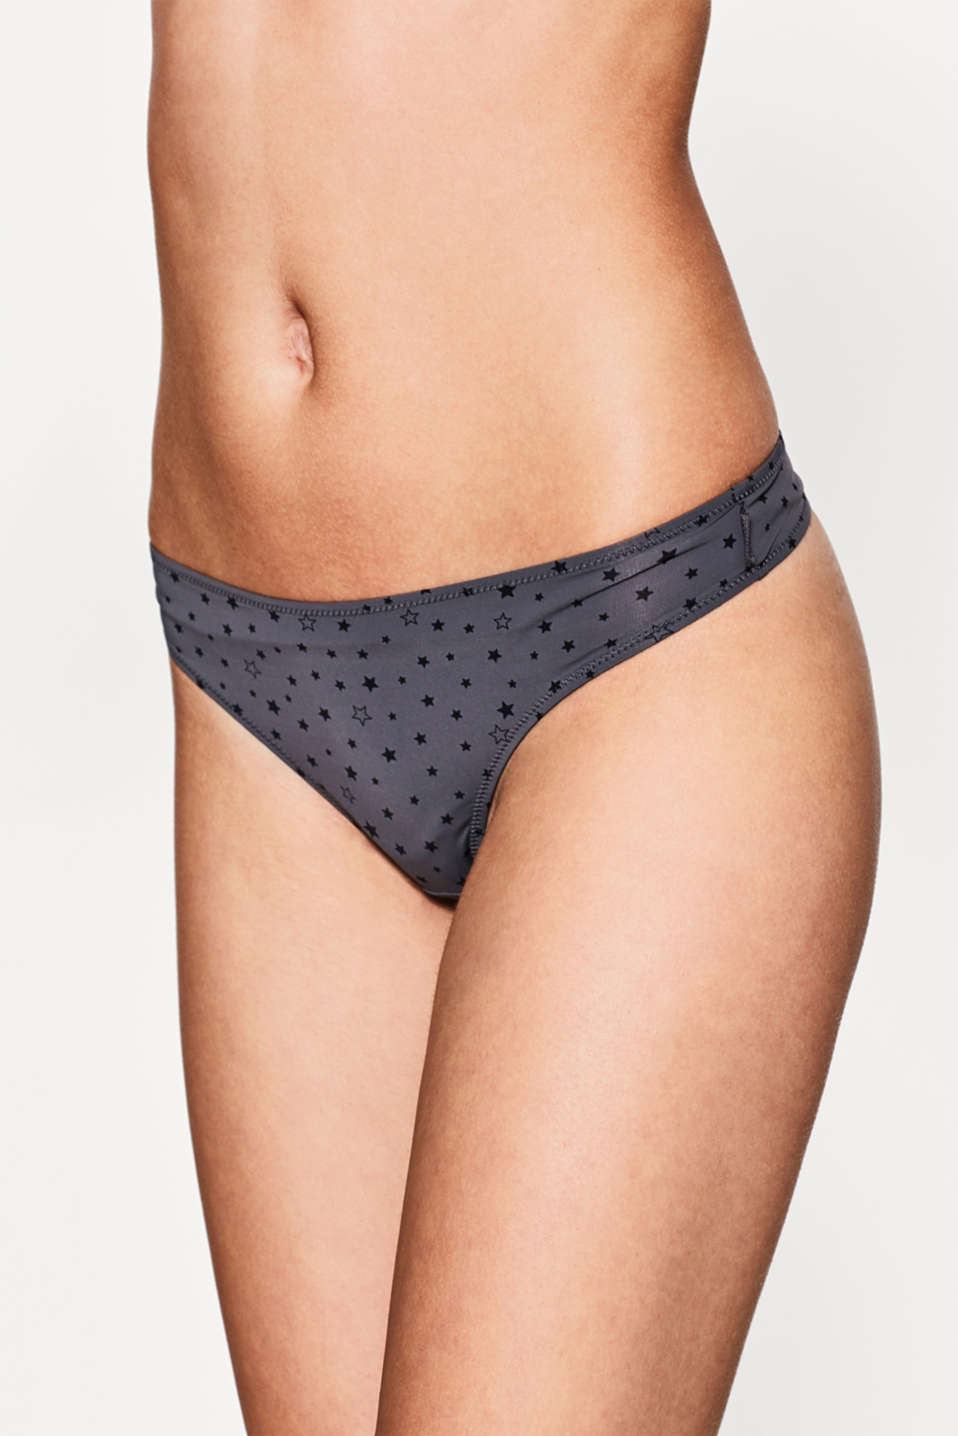 Esprit - Silky thong with a star print